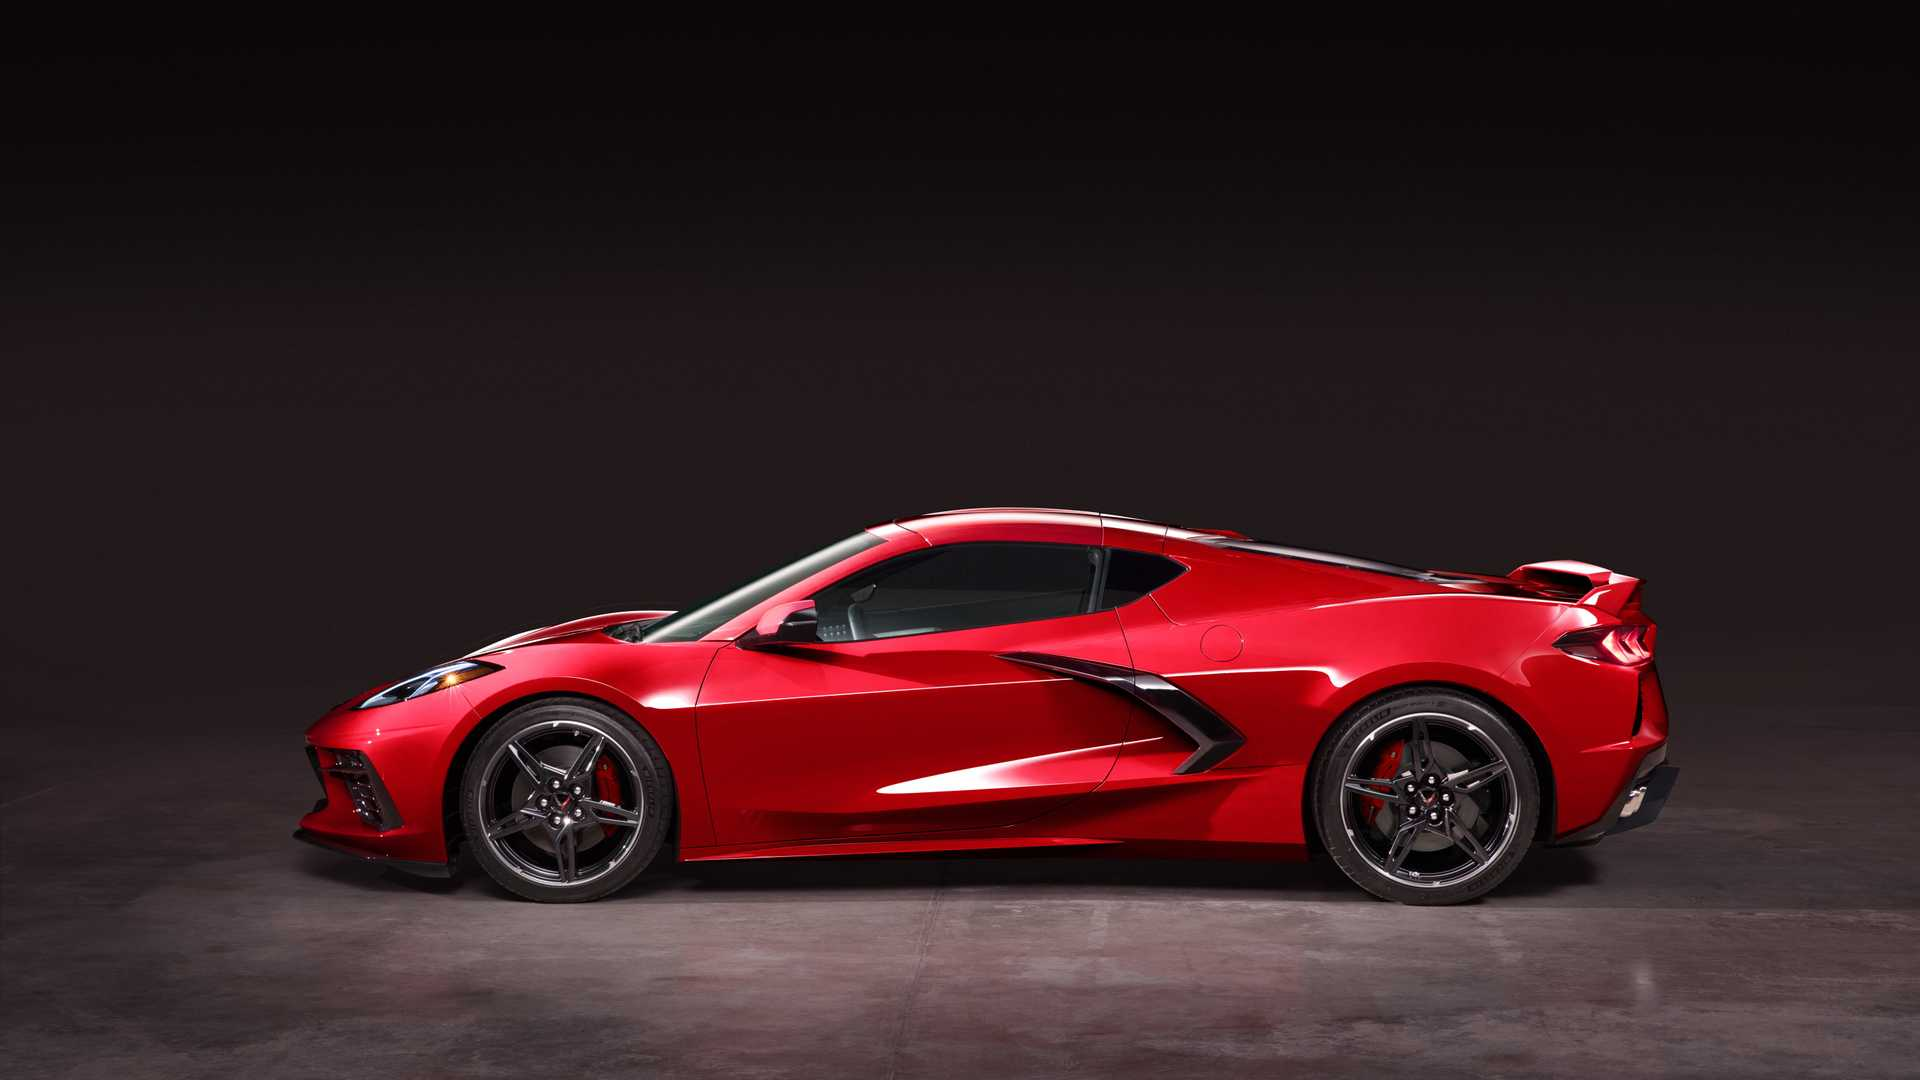 2020-chevrolet-corvette-stingray-29